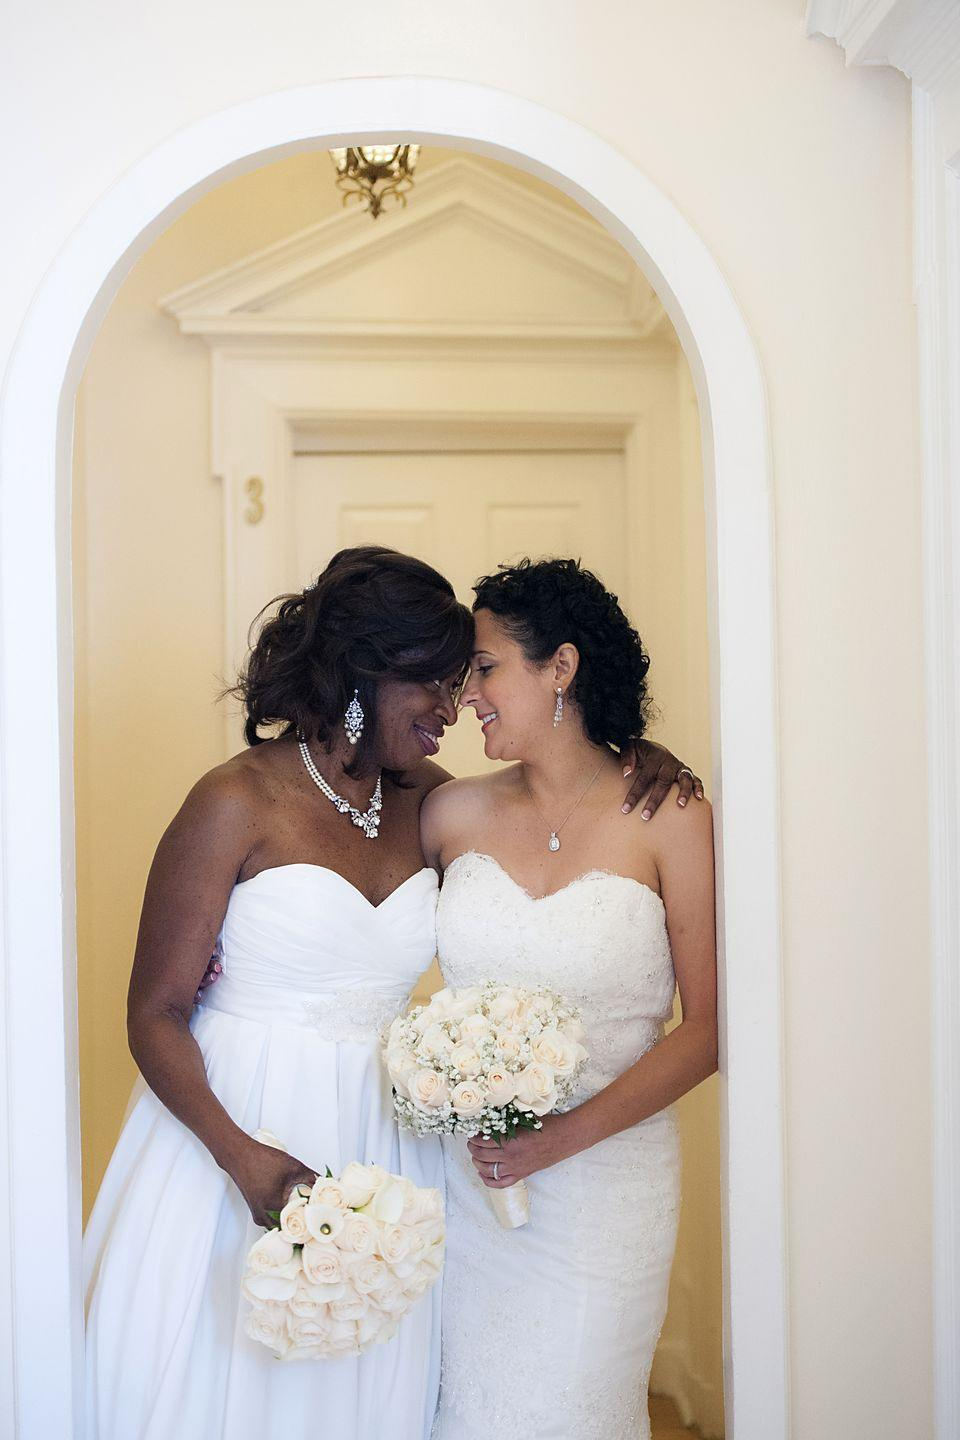 <p>The camera caught an intimate moment between Karen and Beverley on their wedding day on September 12, 2015.</p>